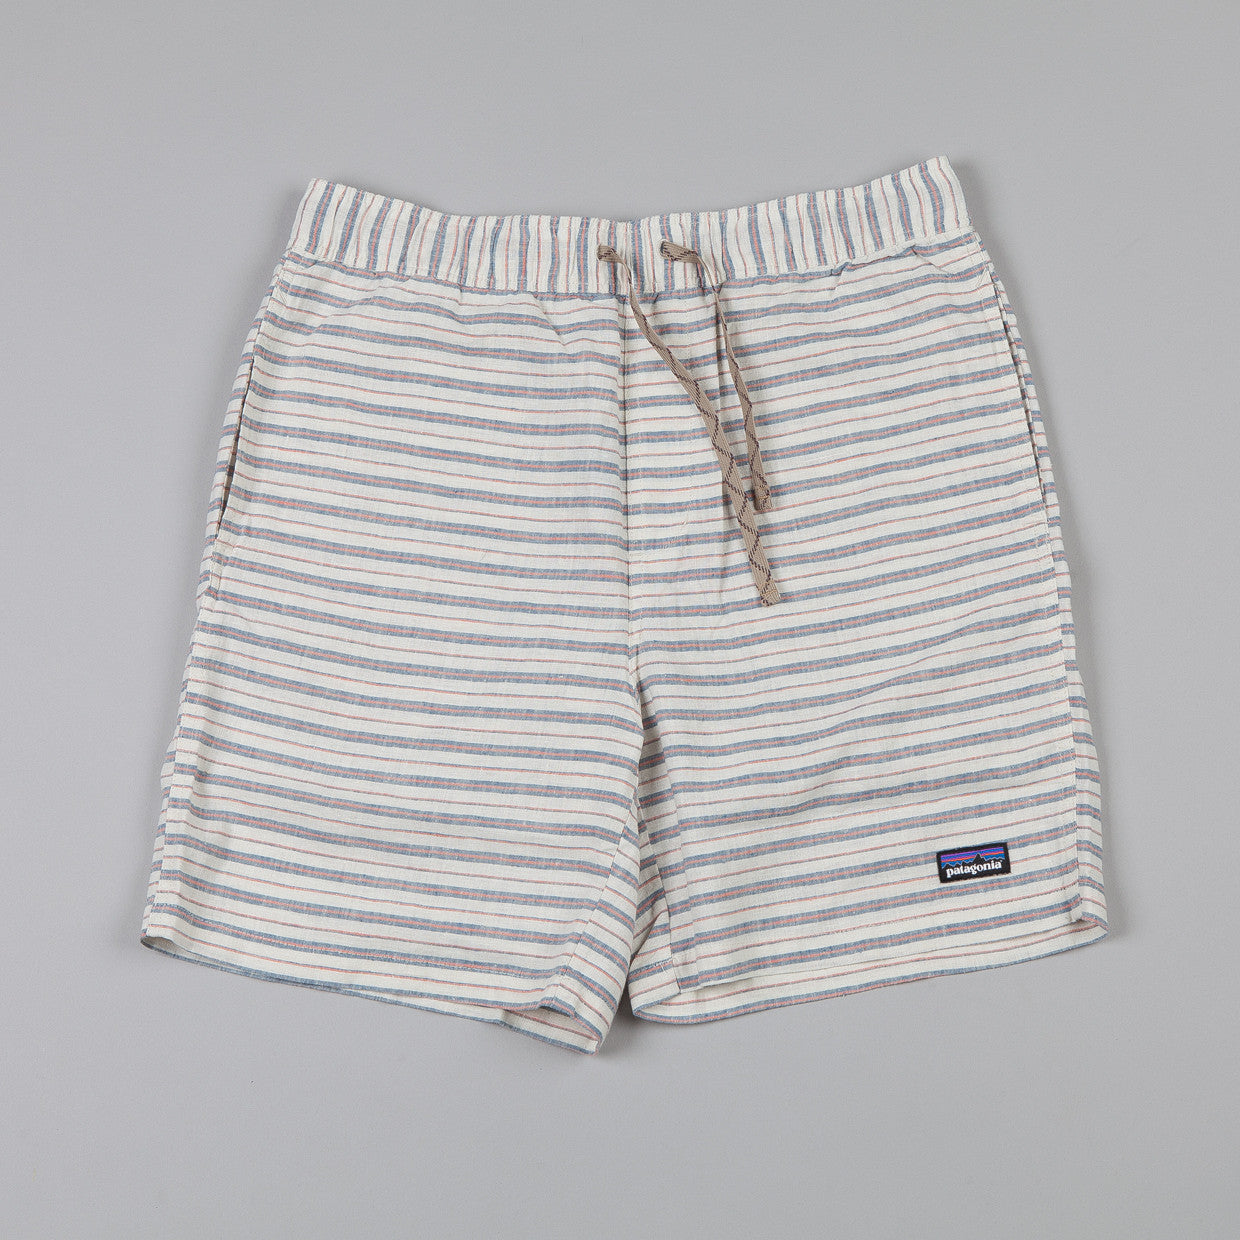 "Patagonia Baggies™ Naturals 7"" Shorts Arroyo Seco : Bleach Stone"